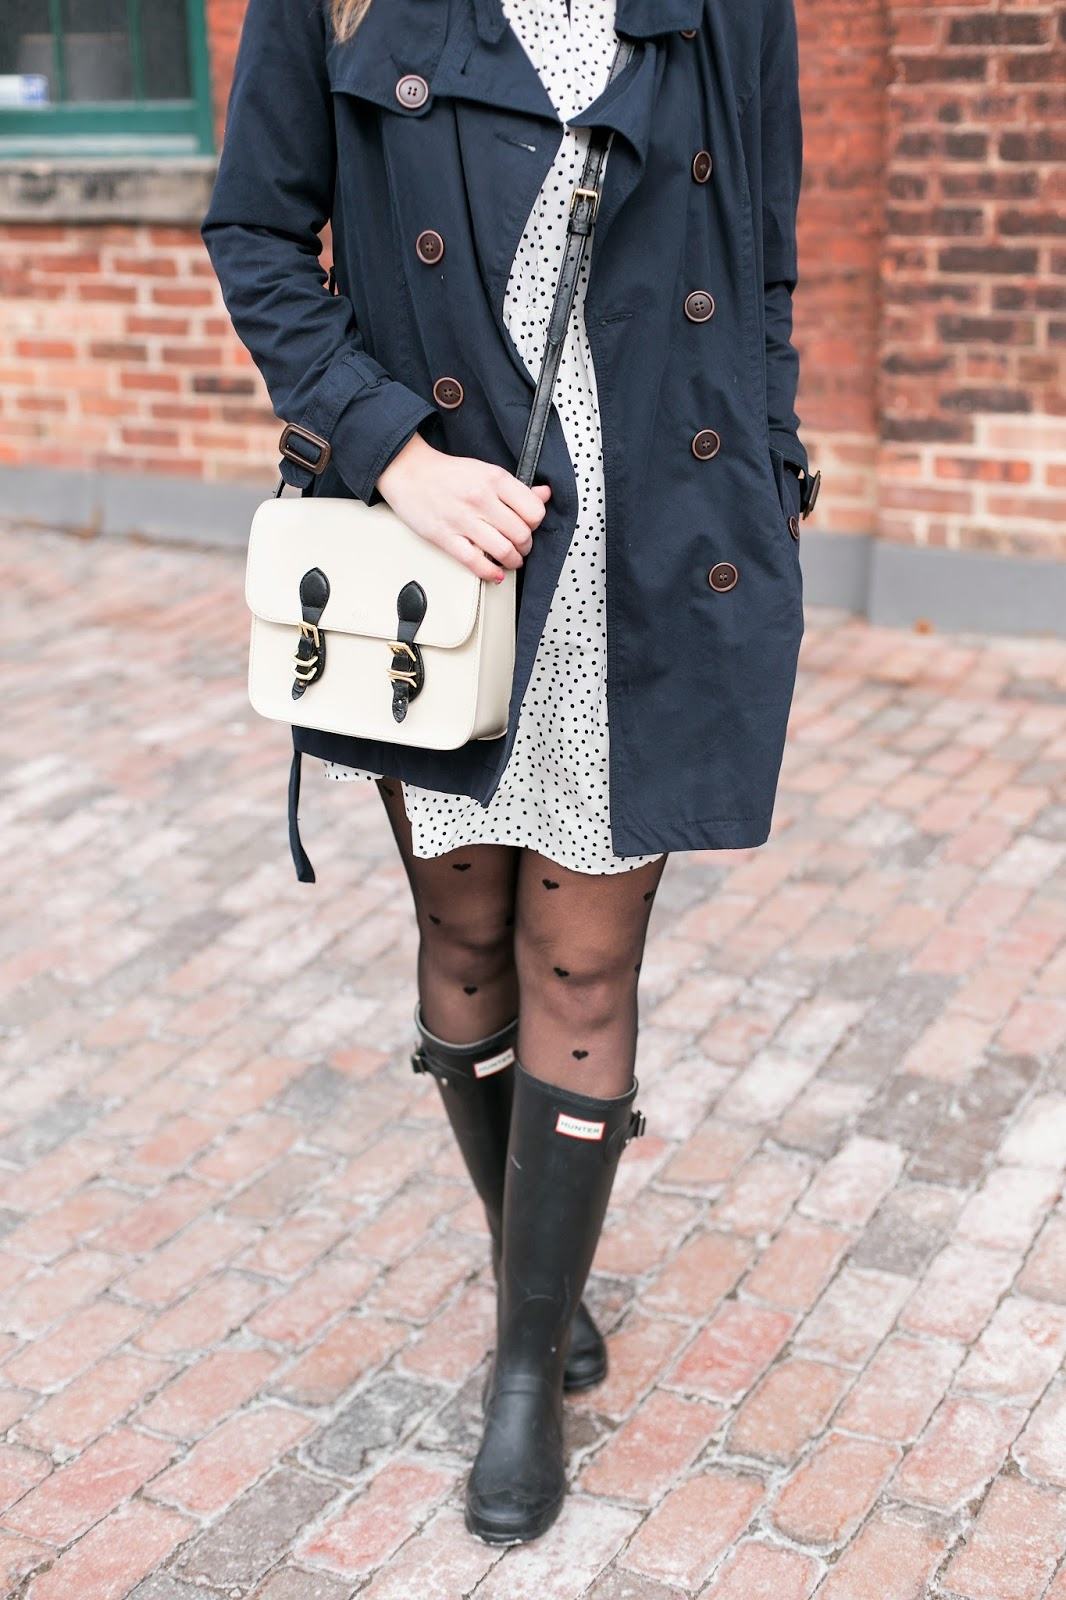 Bijuleni - 4 Spring Essentials, Navy Raincoat, Polka Dot dress, messenger satchel, Hunter books look.